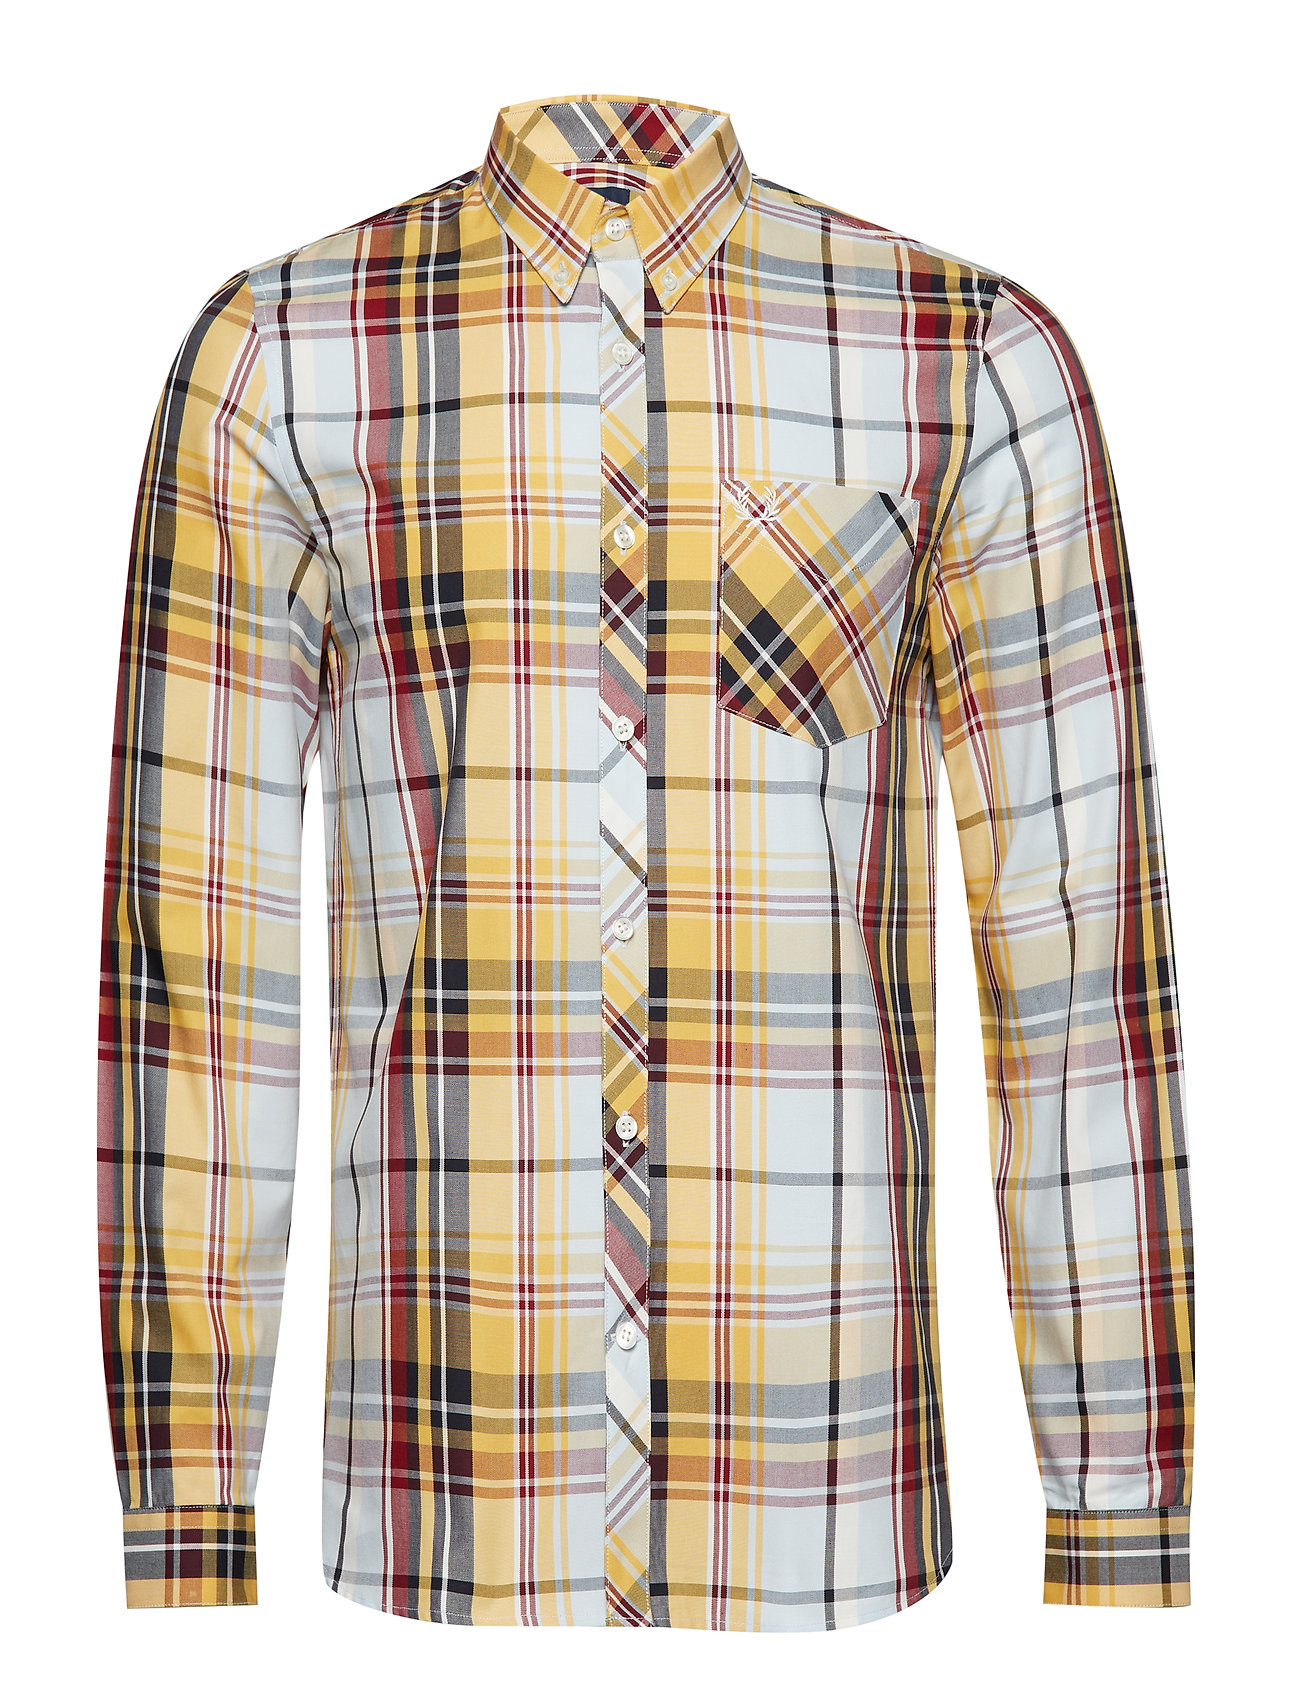 Fred Perry MADRAS CHECK SHIRT - SUNSET GOLD